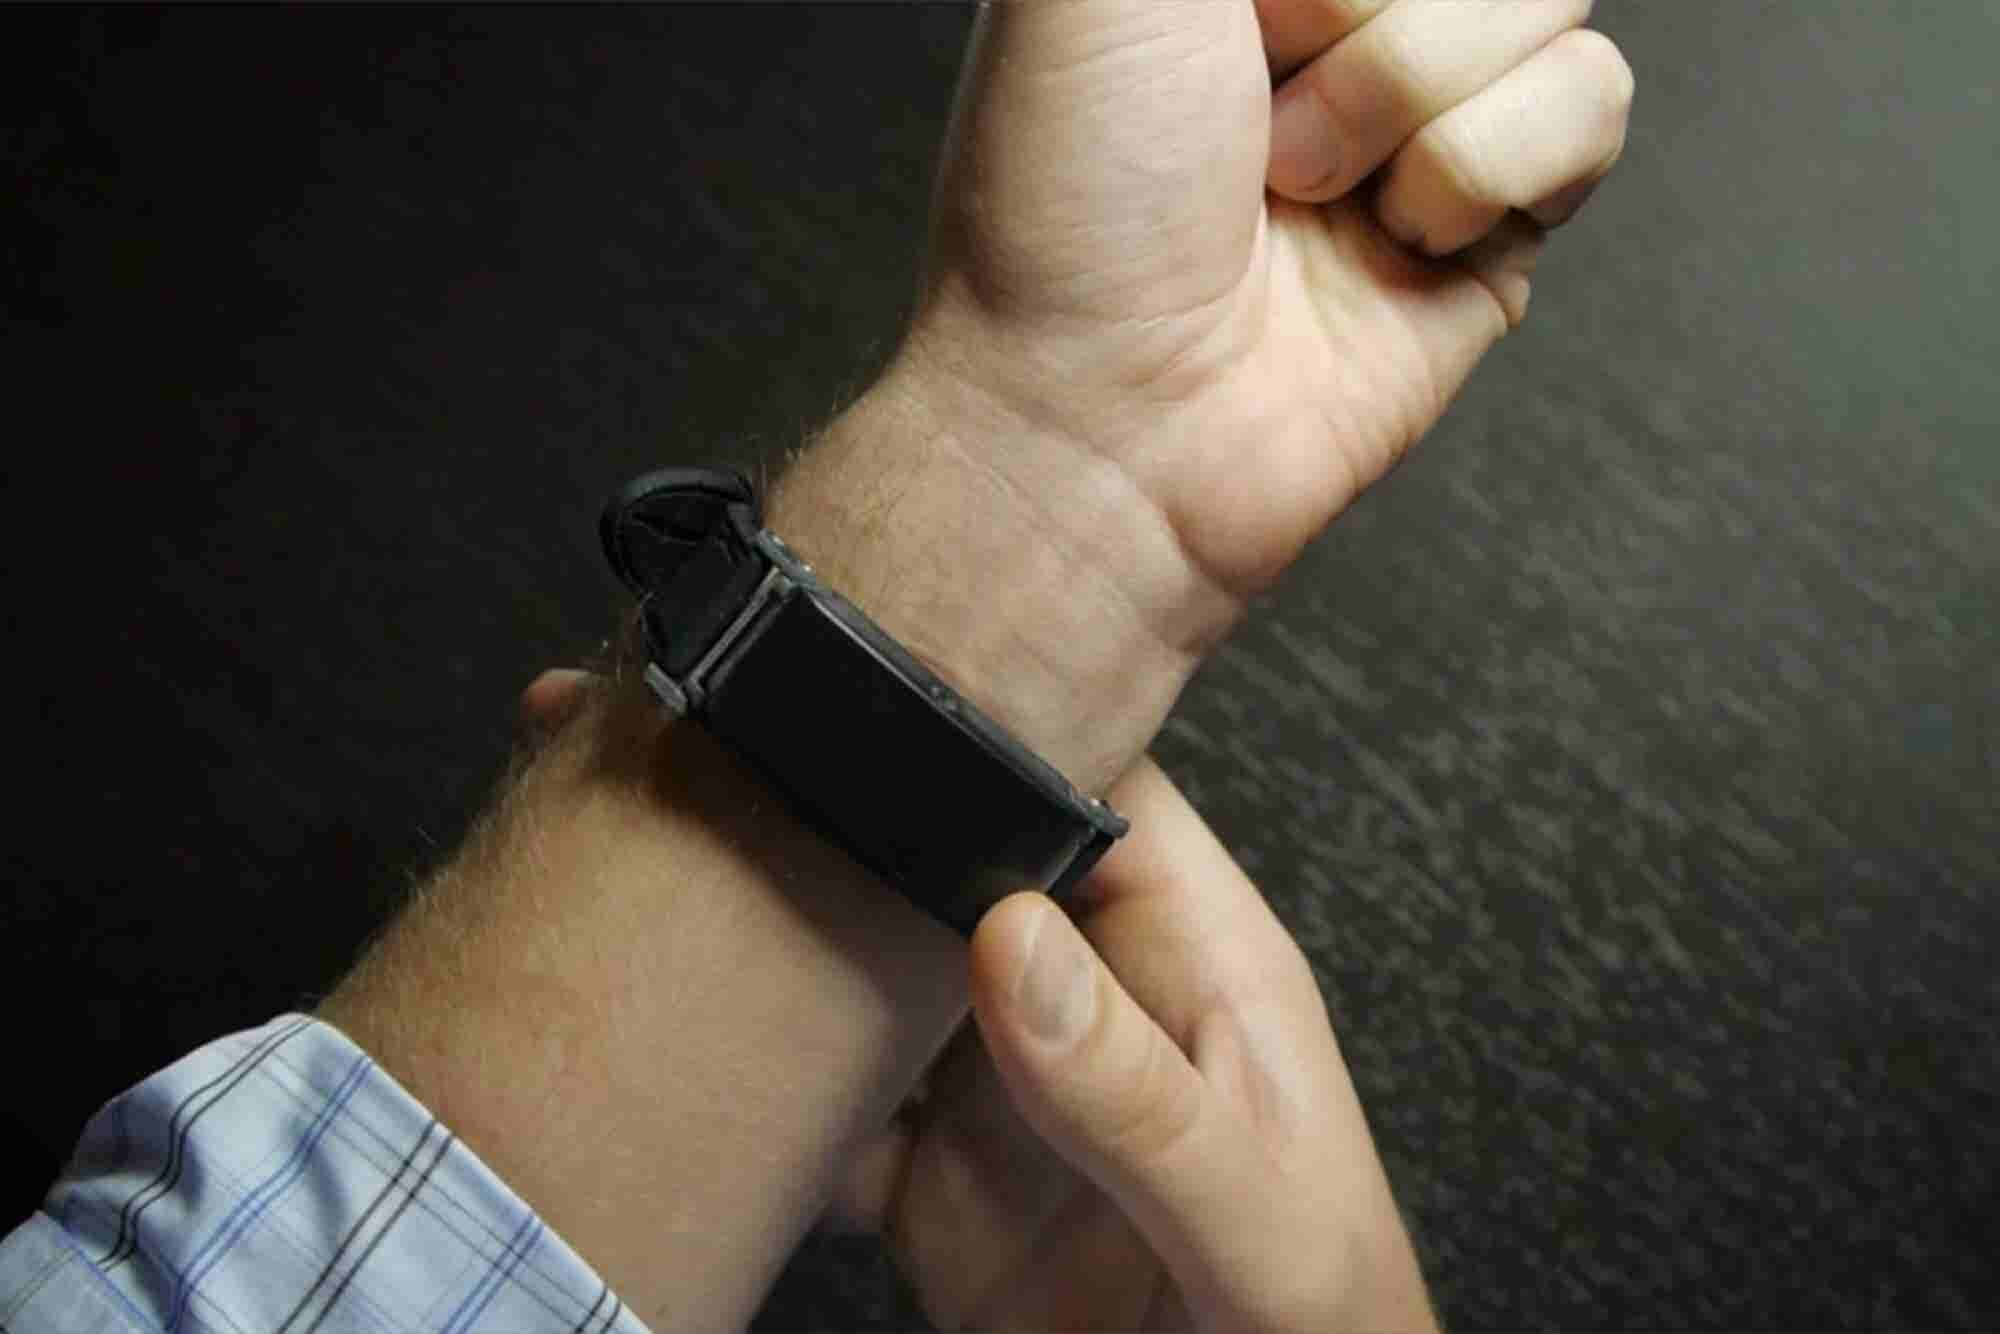 Alcohol-Monitoring Wristband Wins U.S. Prize